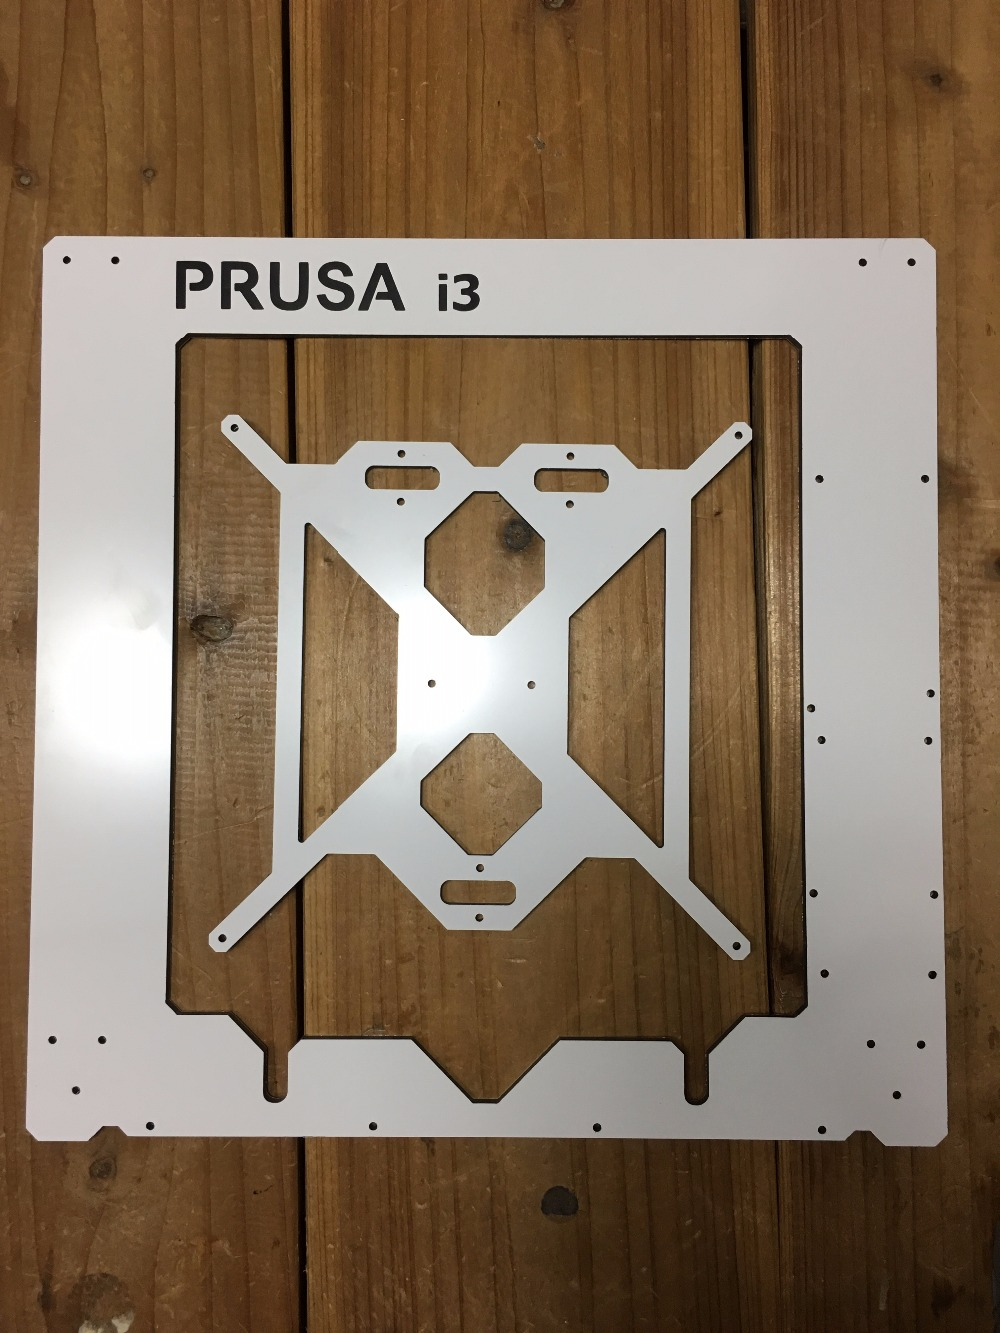 Prusa i3 Rework 3D printer aluminum composite  frame kit RepRap Prusa i3 white color composite plate frame 3D Printer DIY 6 mm 3d принтер prusa i3 reco